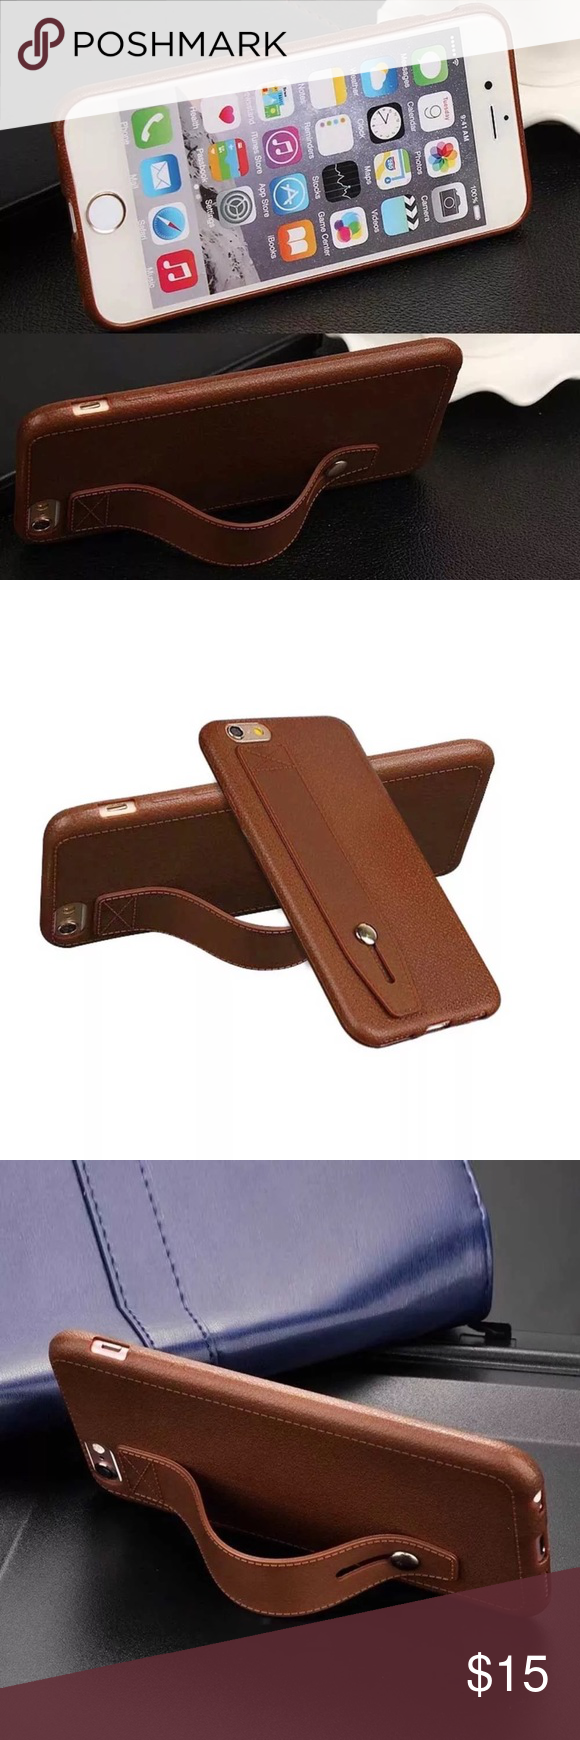 Brown Iphone 7 Plus Case Faux Leather Look Design Phone Case In A Beautiful Tan Brown Color Case Is Sunglasses Case Leather